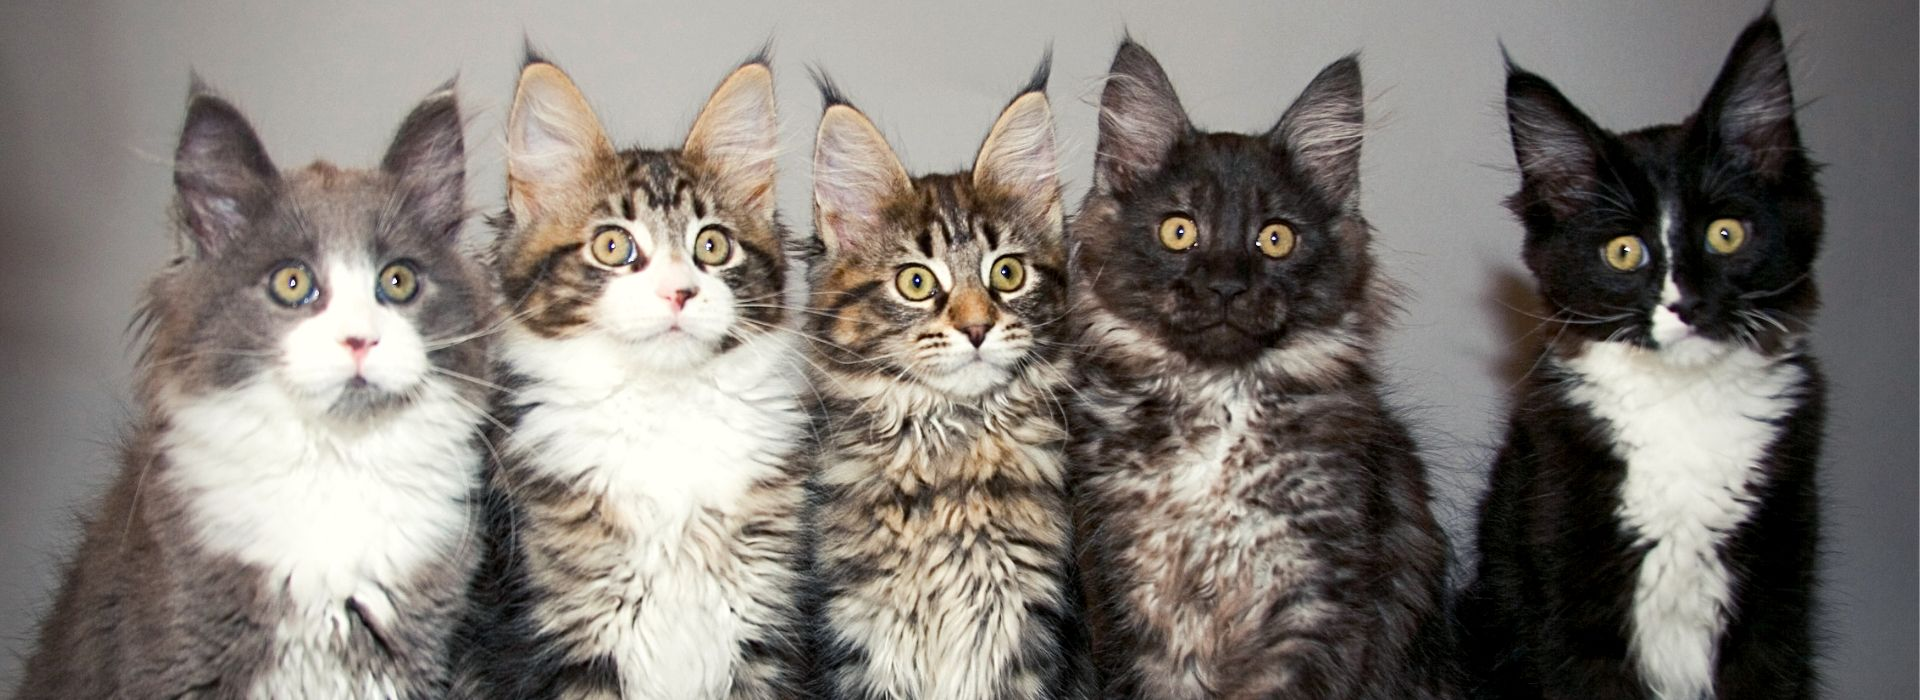 chatons maine coon solide tabby et bicolore blanc noir brun silver